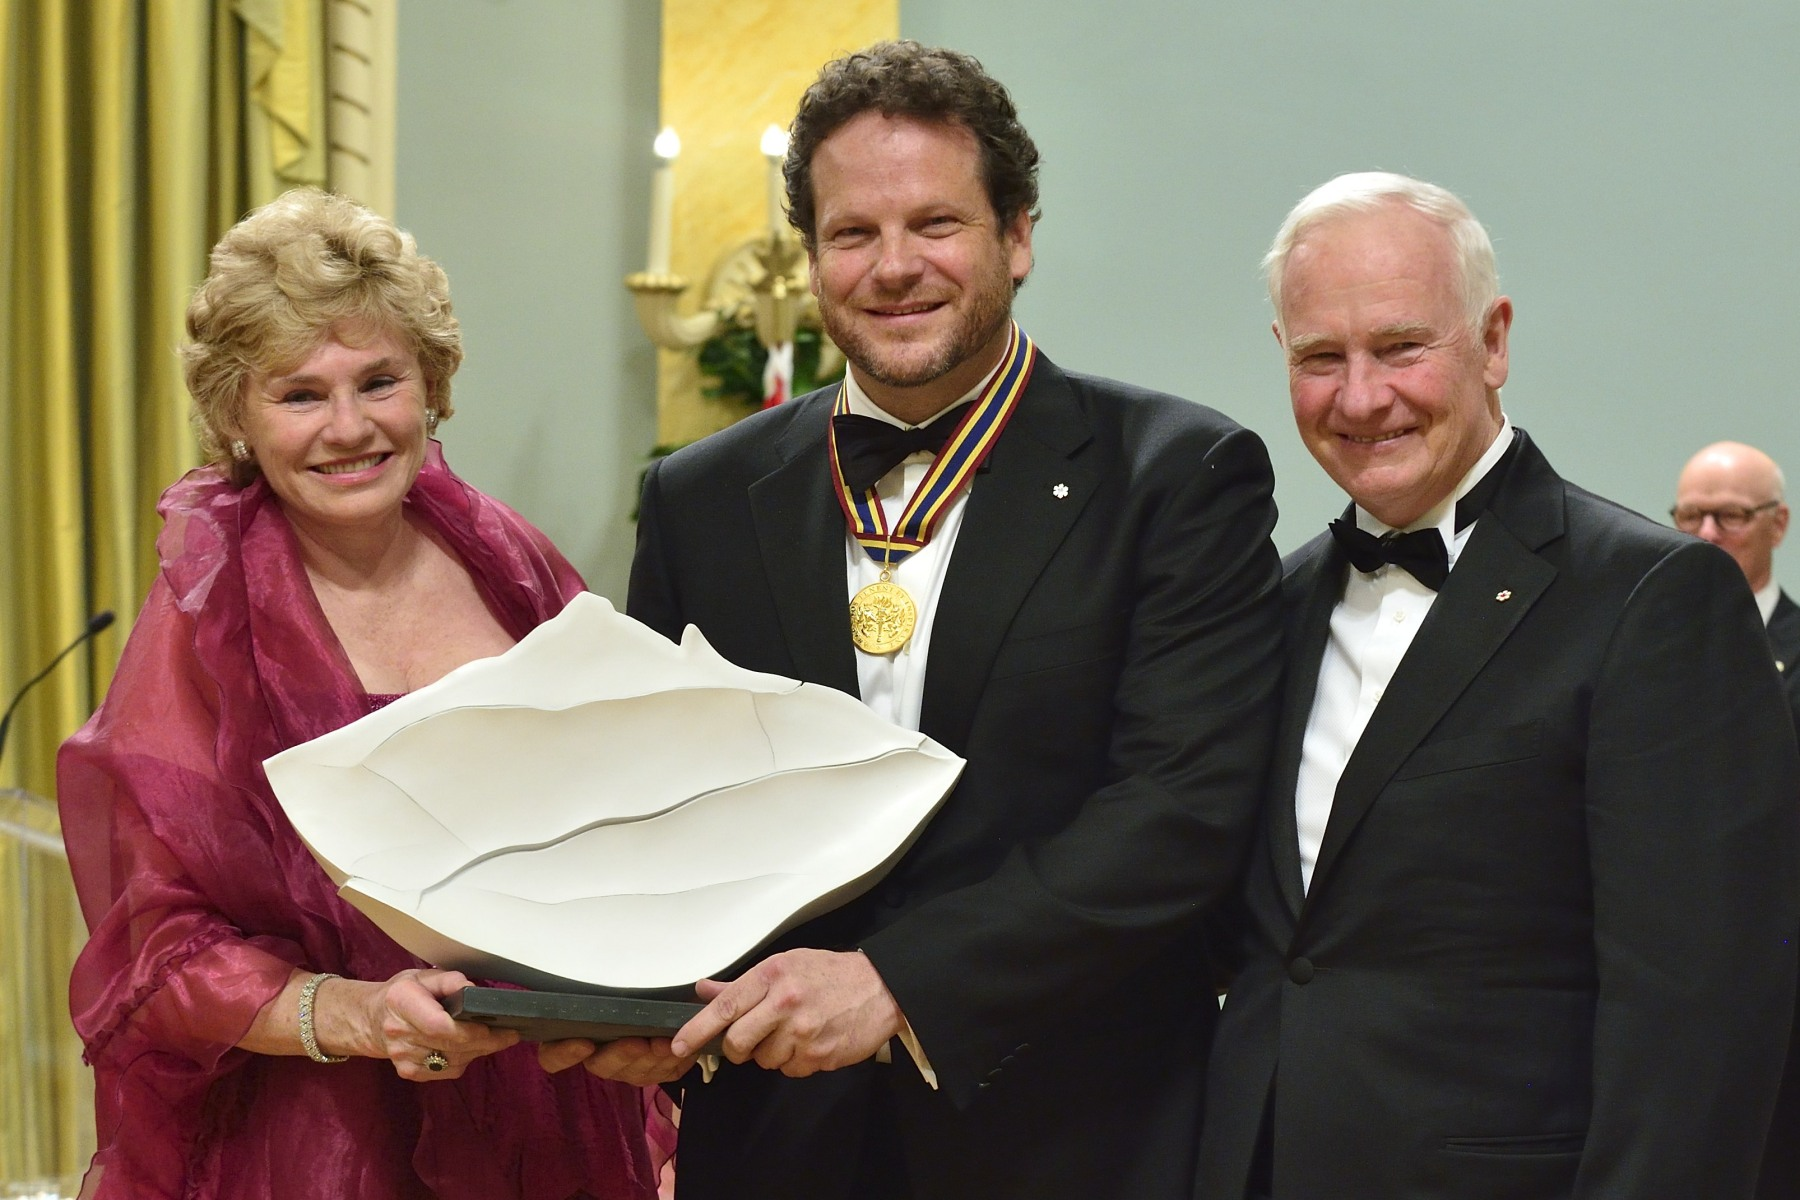 Mr. Albert Schultz, actor, director and artistic director, received the National Arts Centre Award which recognizes the work of an extraordinary nature by an individual artist or company in the past performance year.